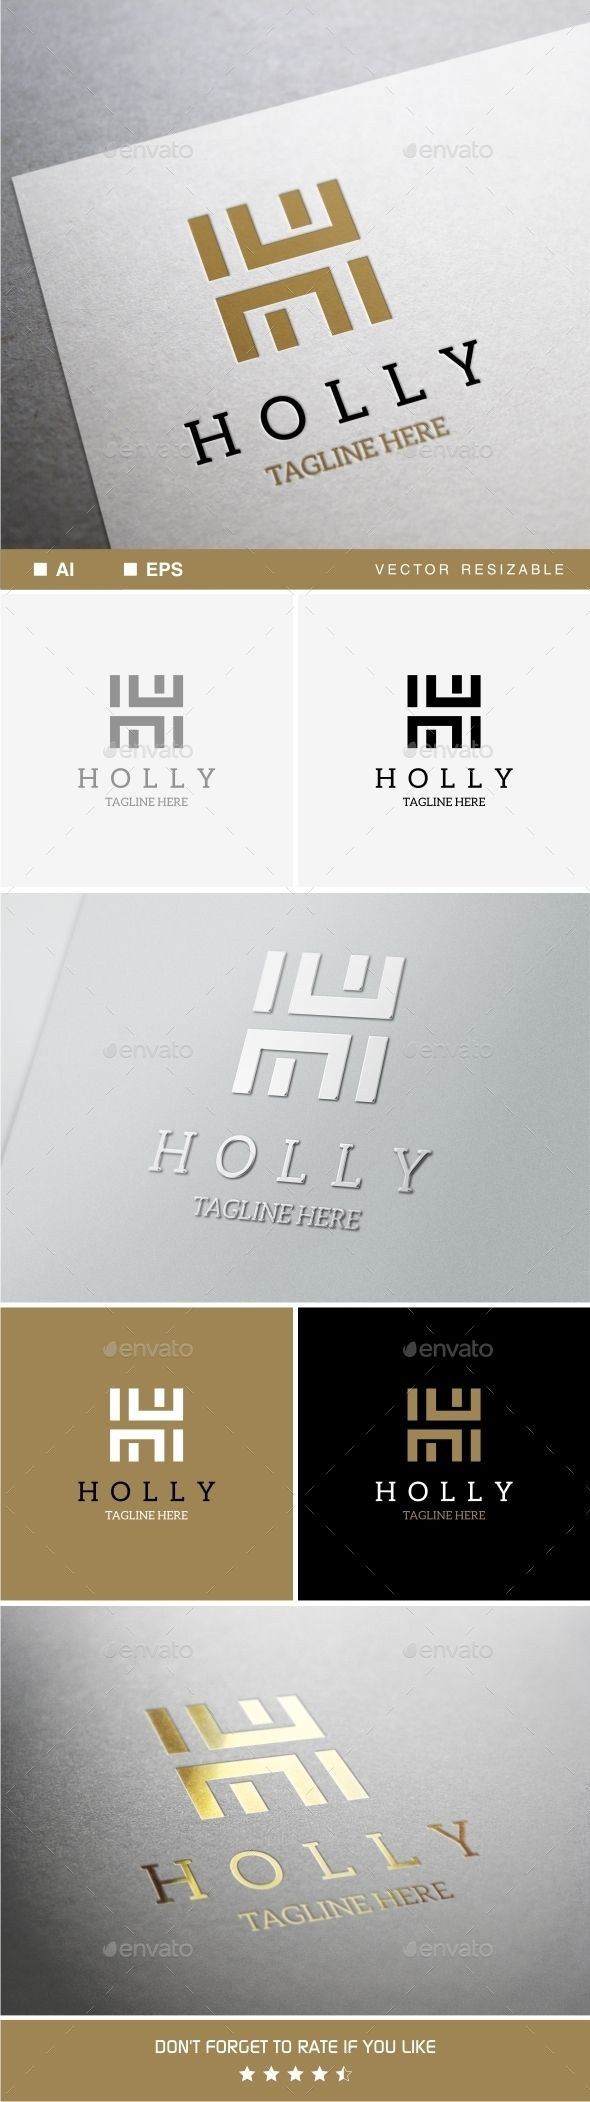 Holly H Letter - Logo Design Template Vector #logotype Download it here: http://graphicriver.net/item/holly-h-letter-logo-template/13810647?s_rank=1571?ref=nexion